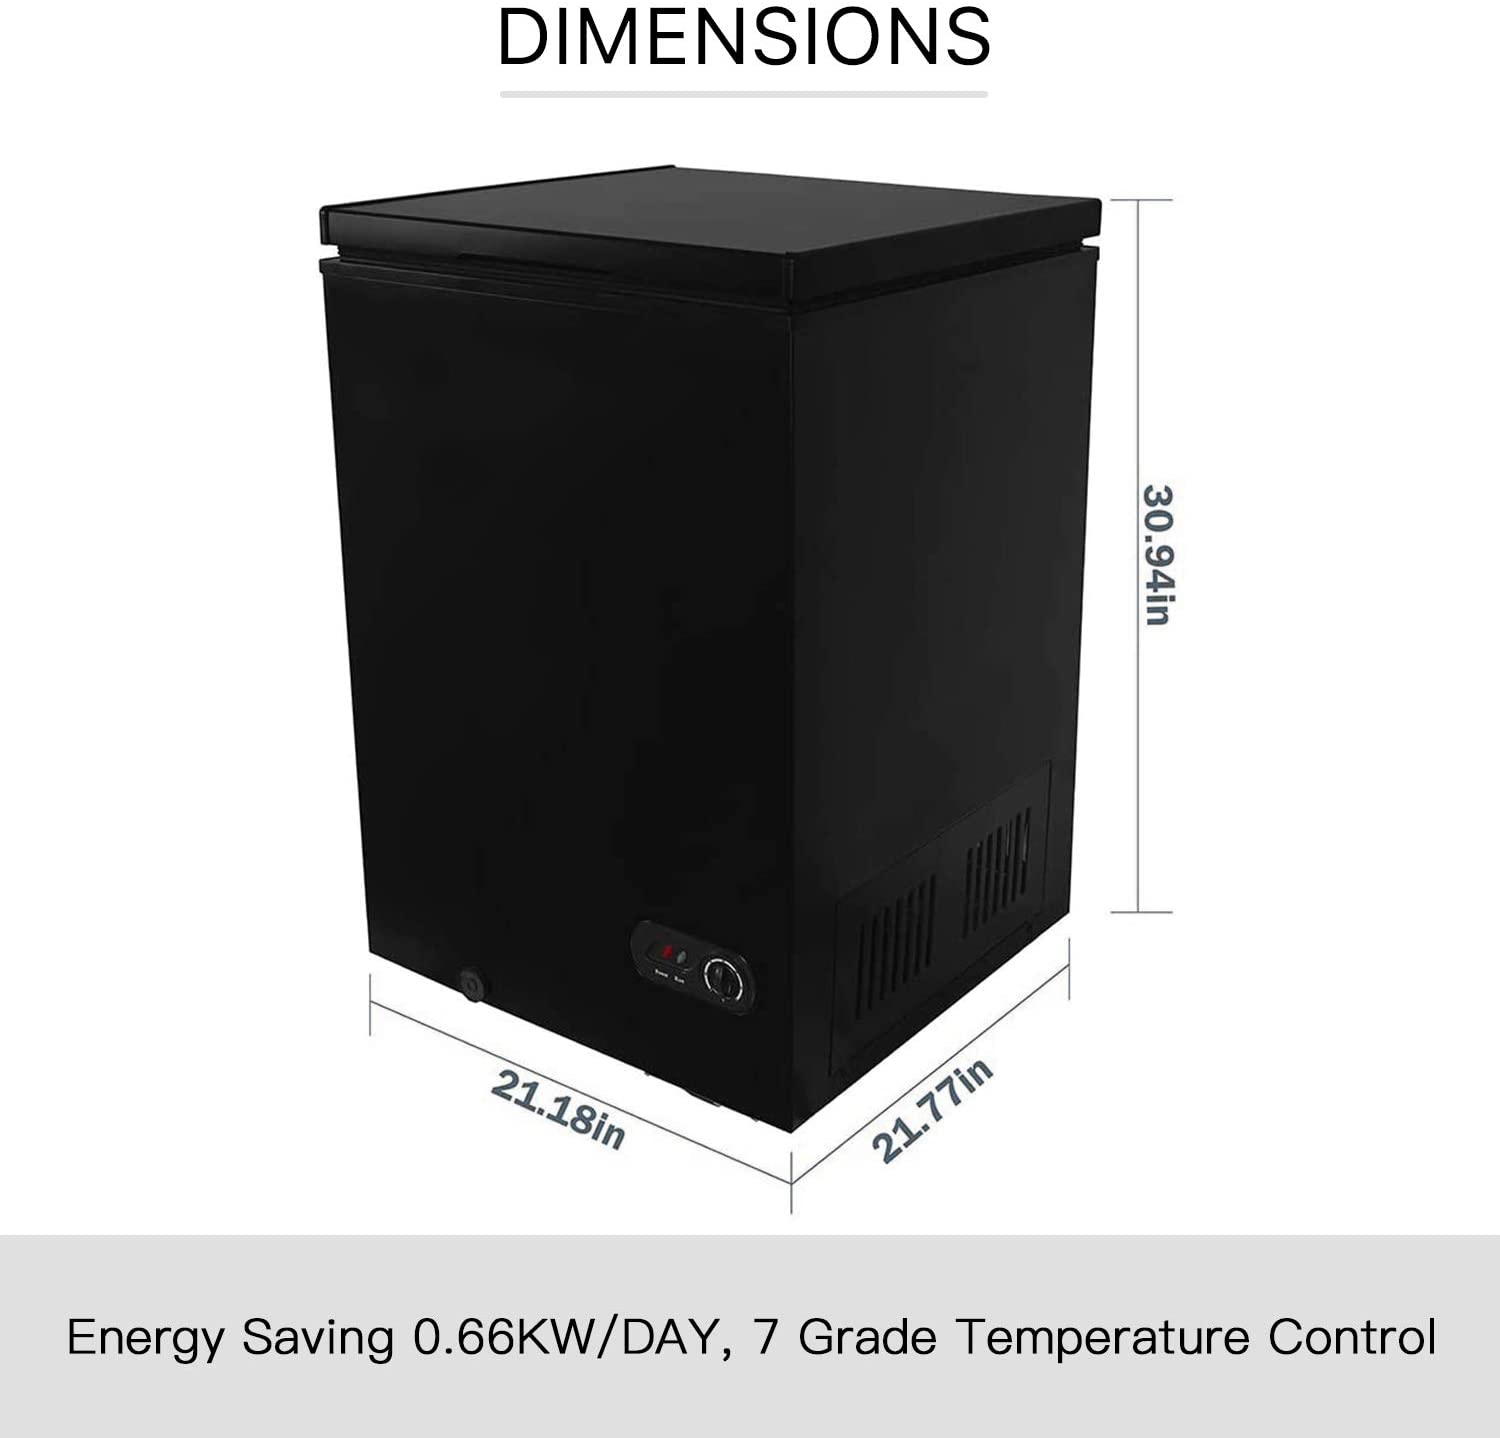 R.W.Flame Commercial Chest Freezer Specs